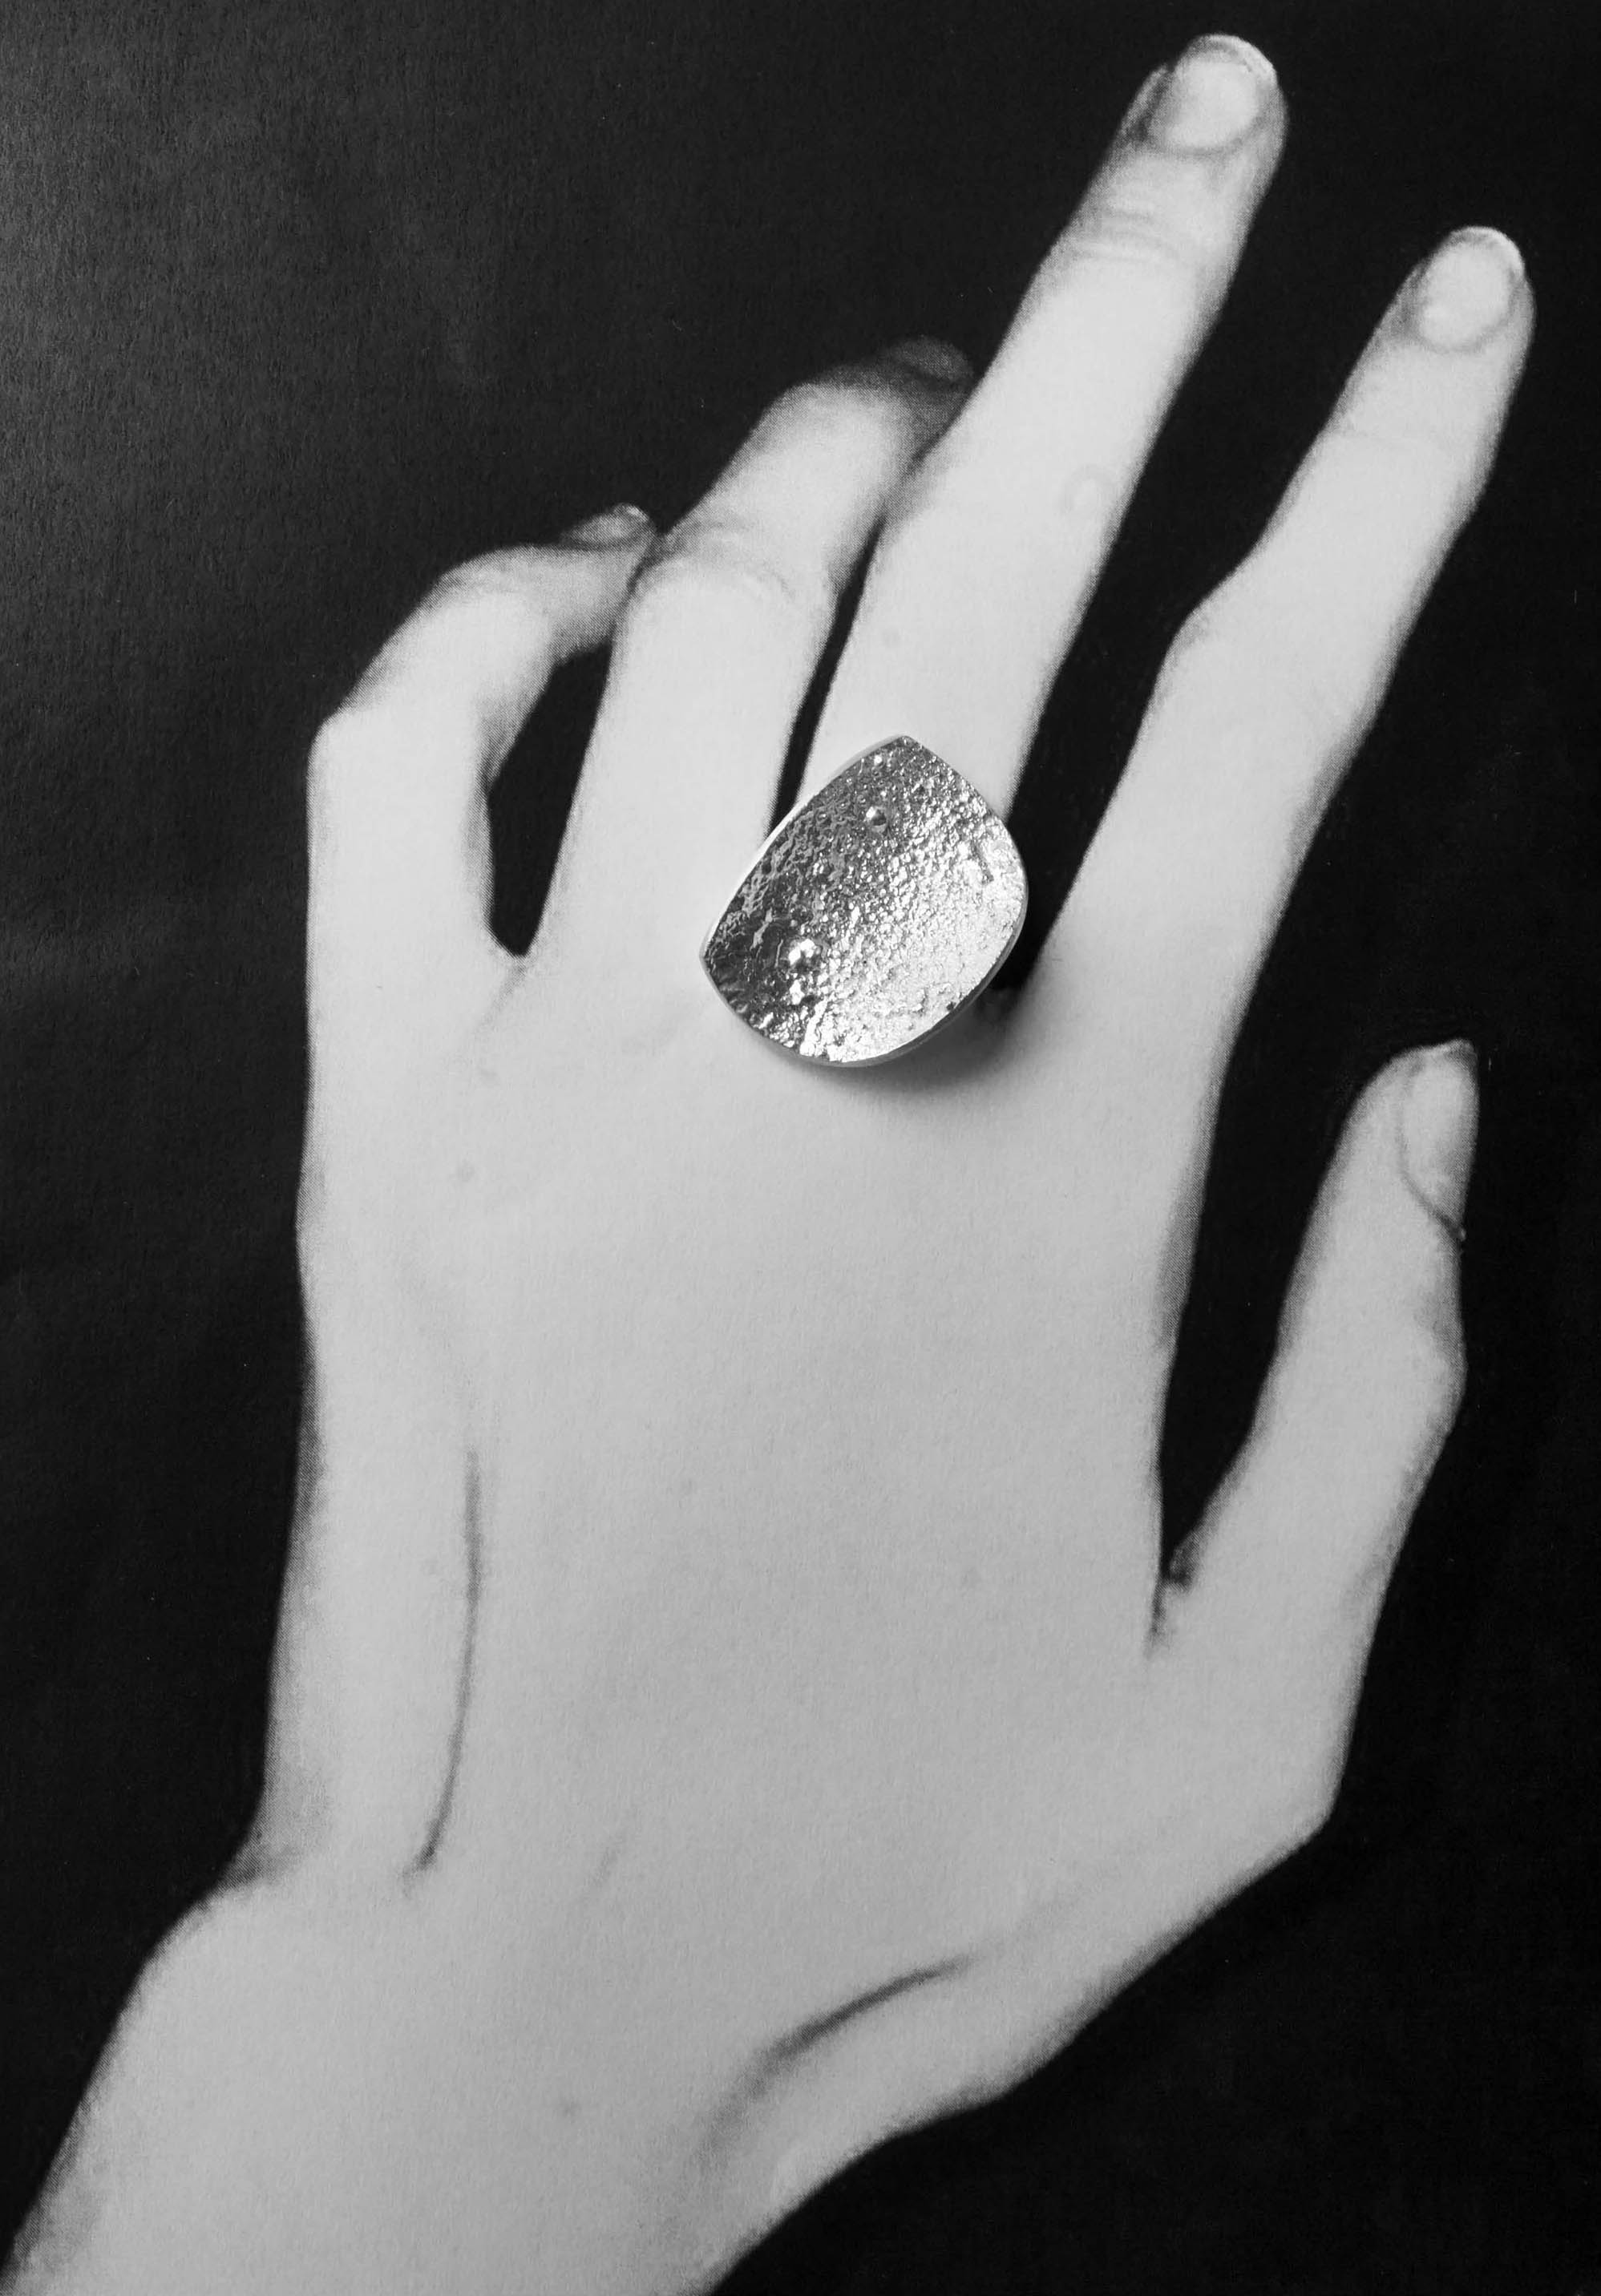 Reticulation ring